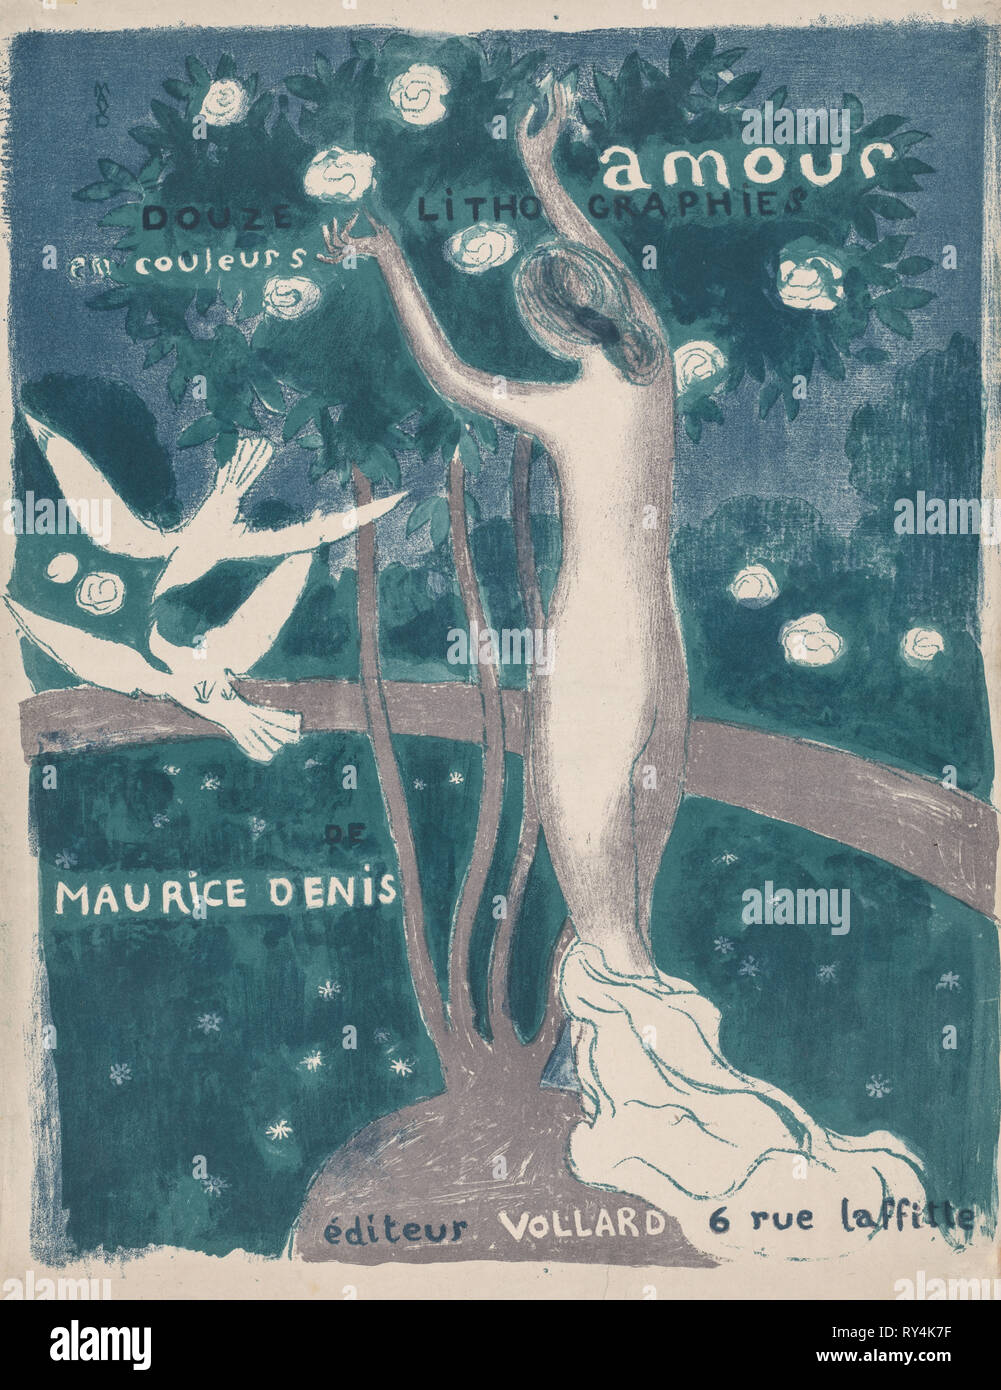 Love: Cover (Amour:  Couverture), 1895 (published 1911). Maurice Denis (French, 1870-1943), Ambroise Vollard (French, 1867-1939). Color lithograph - Stock Image